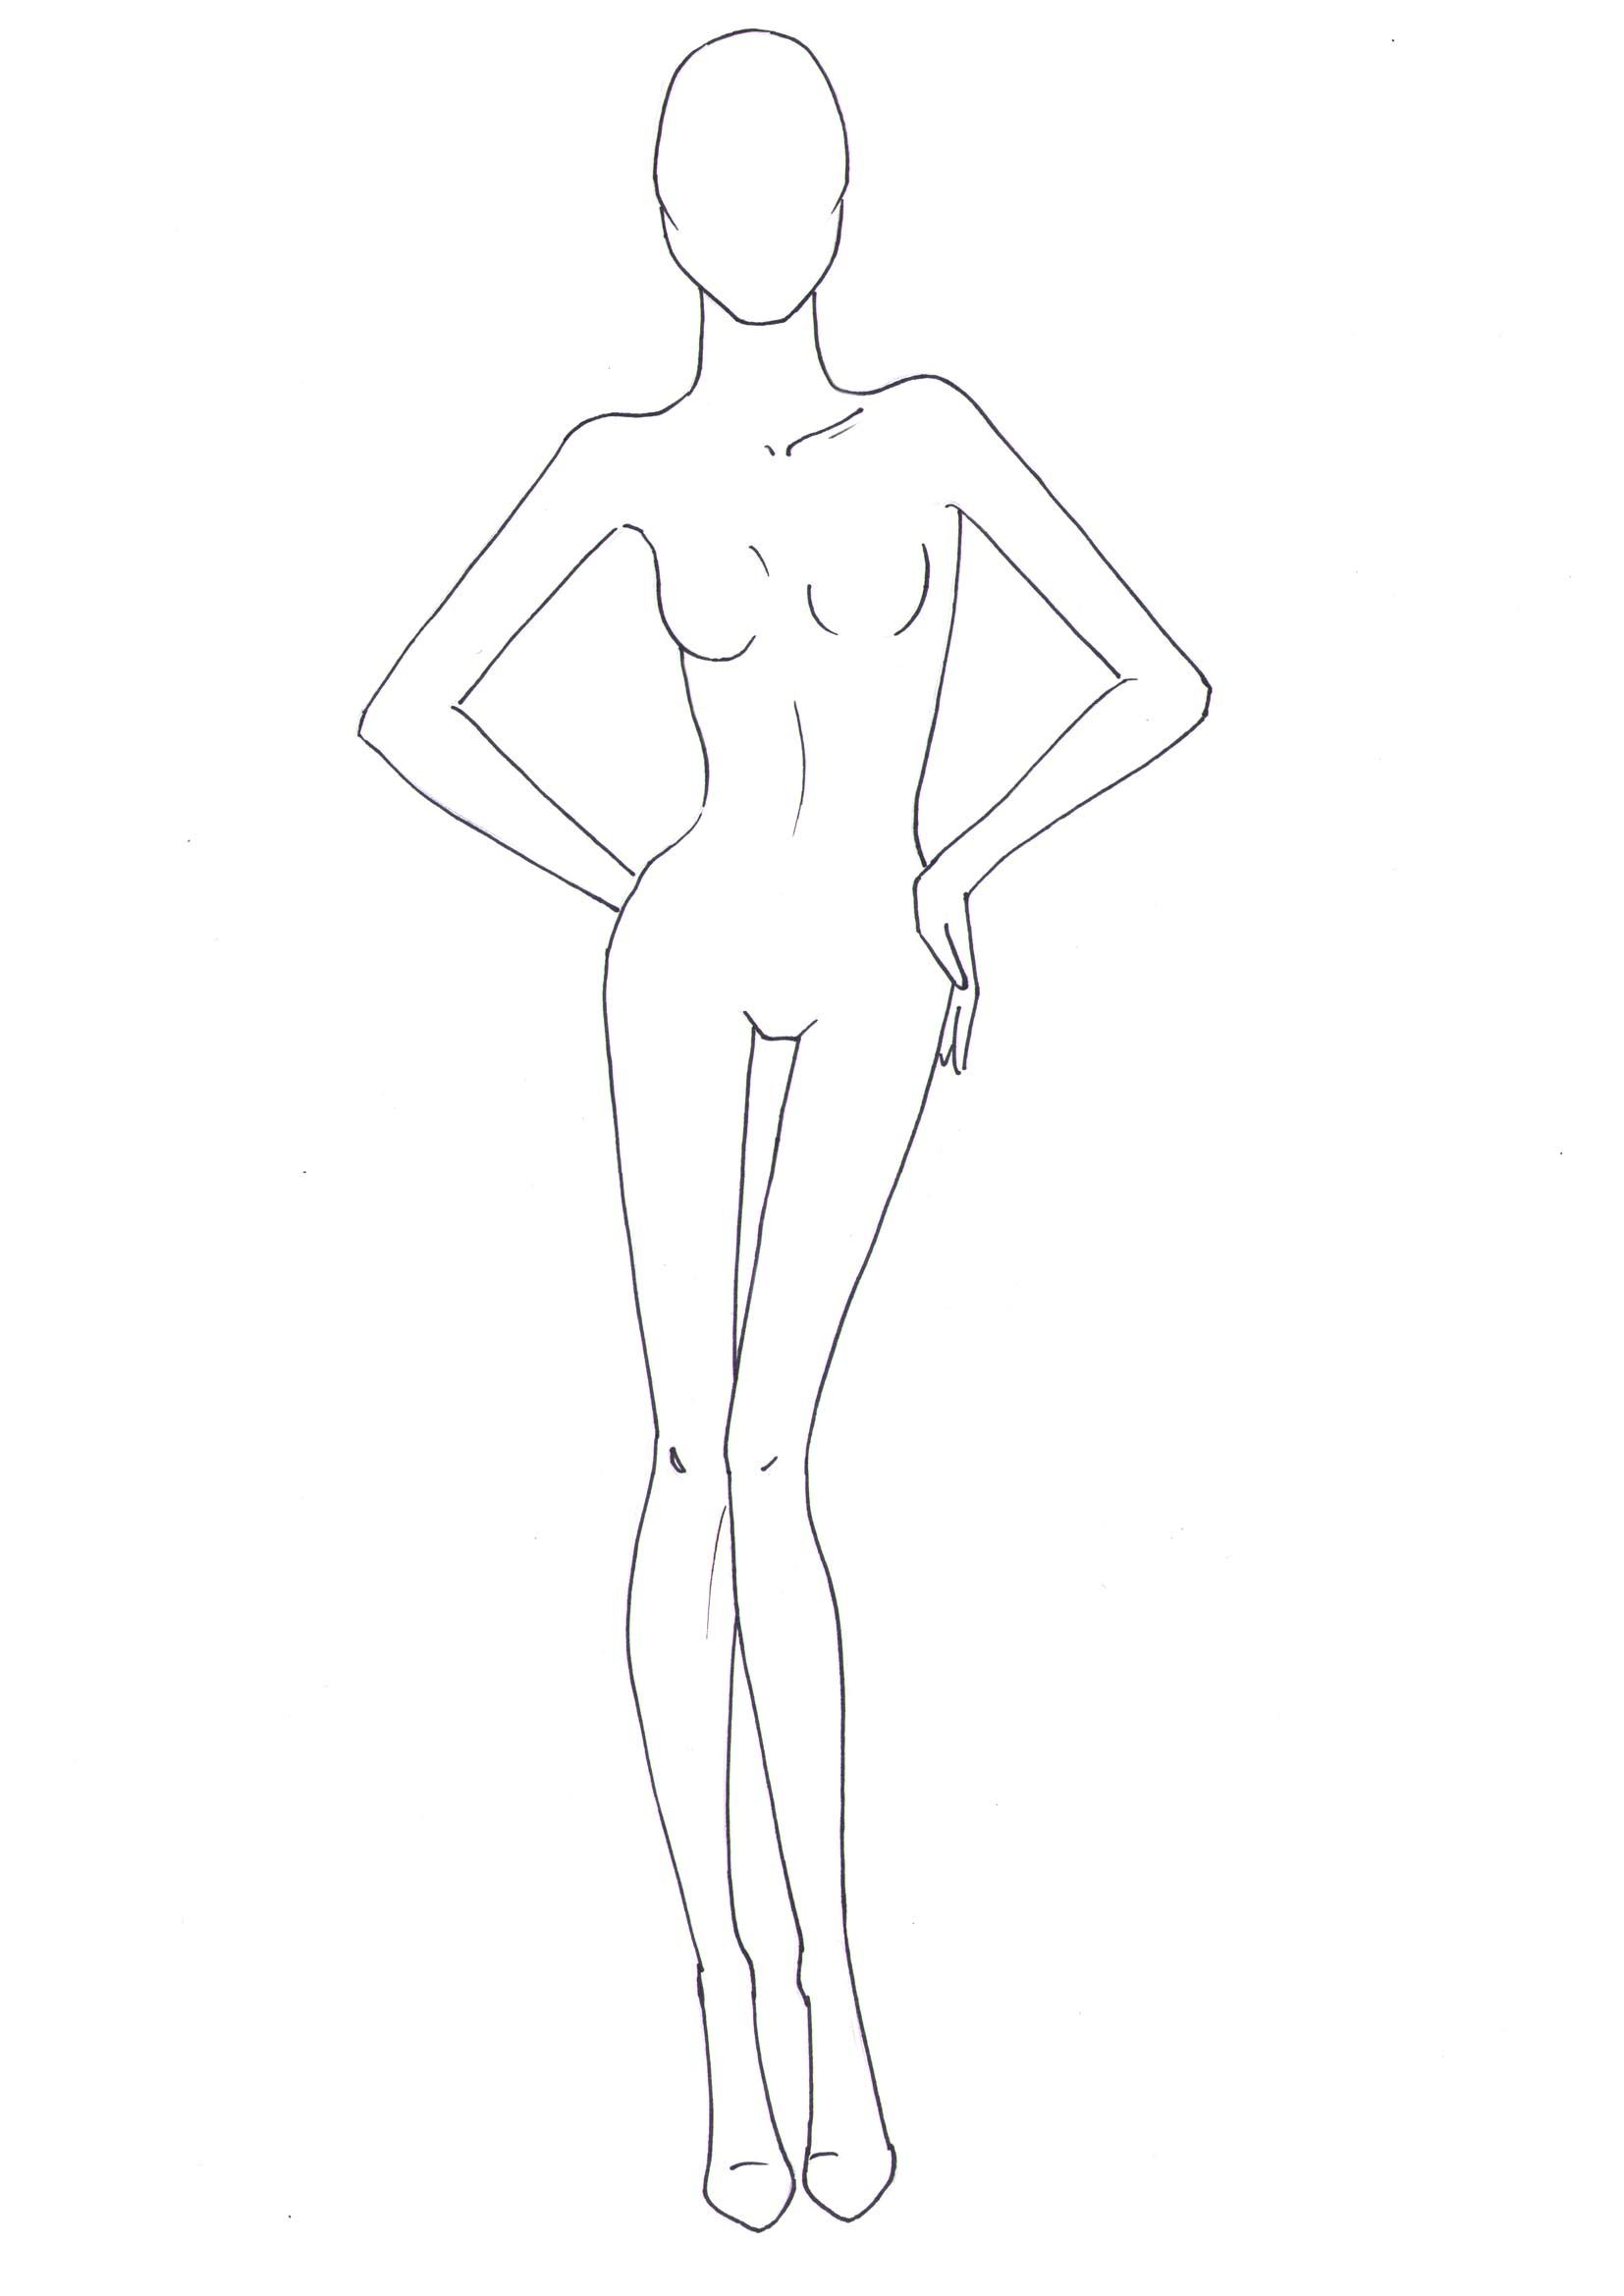 Fashion Model Outline : fashion, model, outline, Fashion, Drawing, Templates, Tutorials, Illustration, Template,, Figure, Drawing,, Design, Template